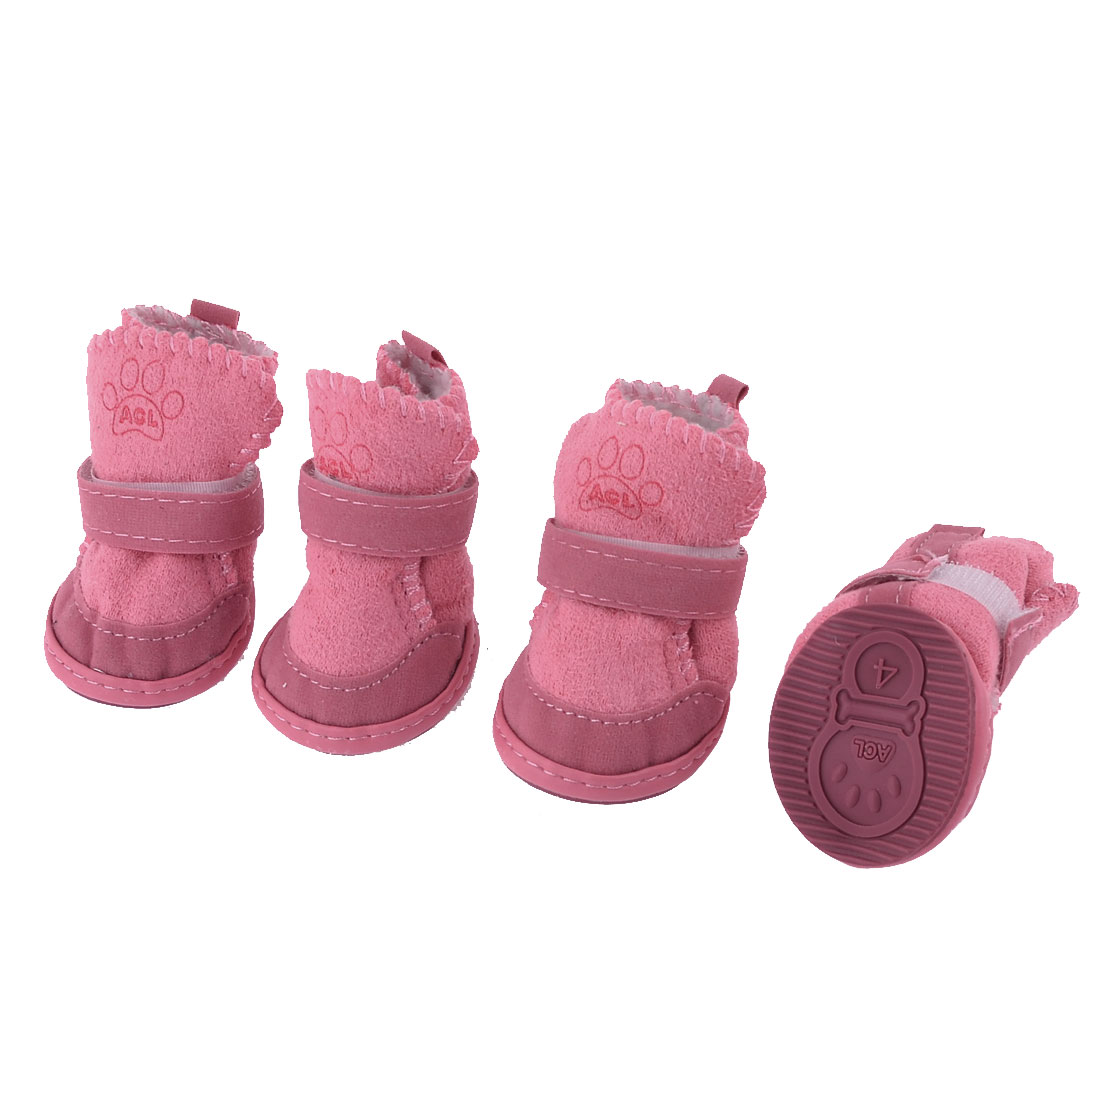 2 Pairs Winter Walking Paw Print Detachable Closure Pet Dog Shoes Boots Pink XS